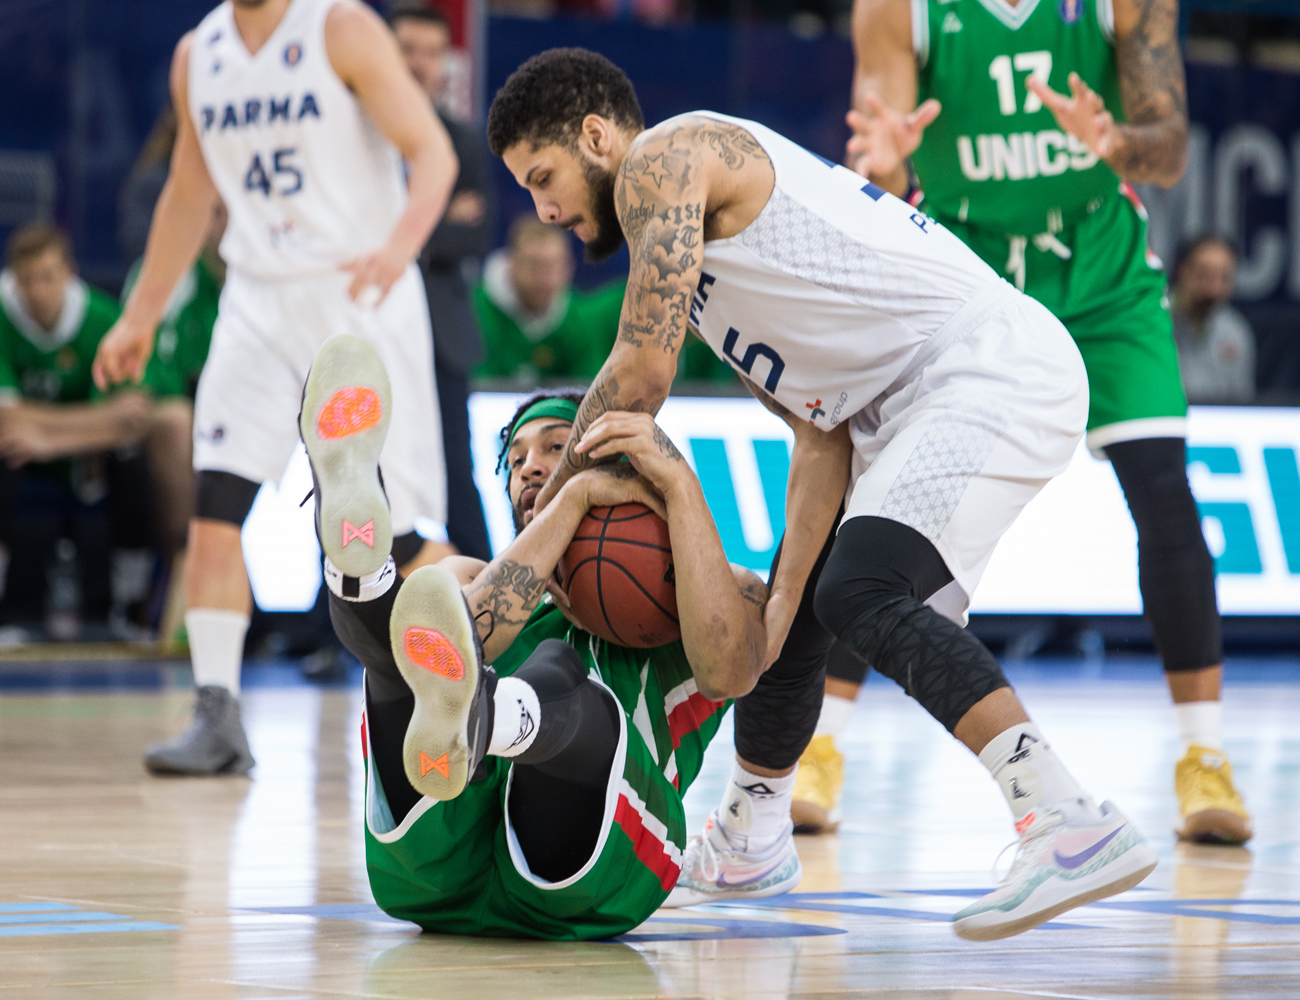 Justice Banks In Game-Winner, PARMA Stuns UNICS